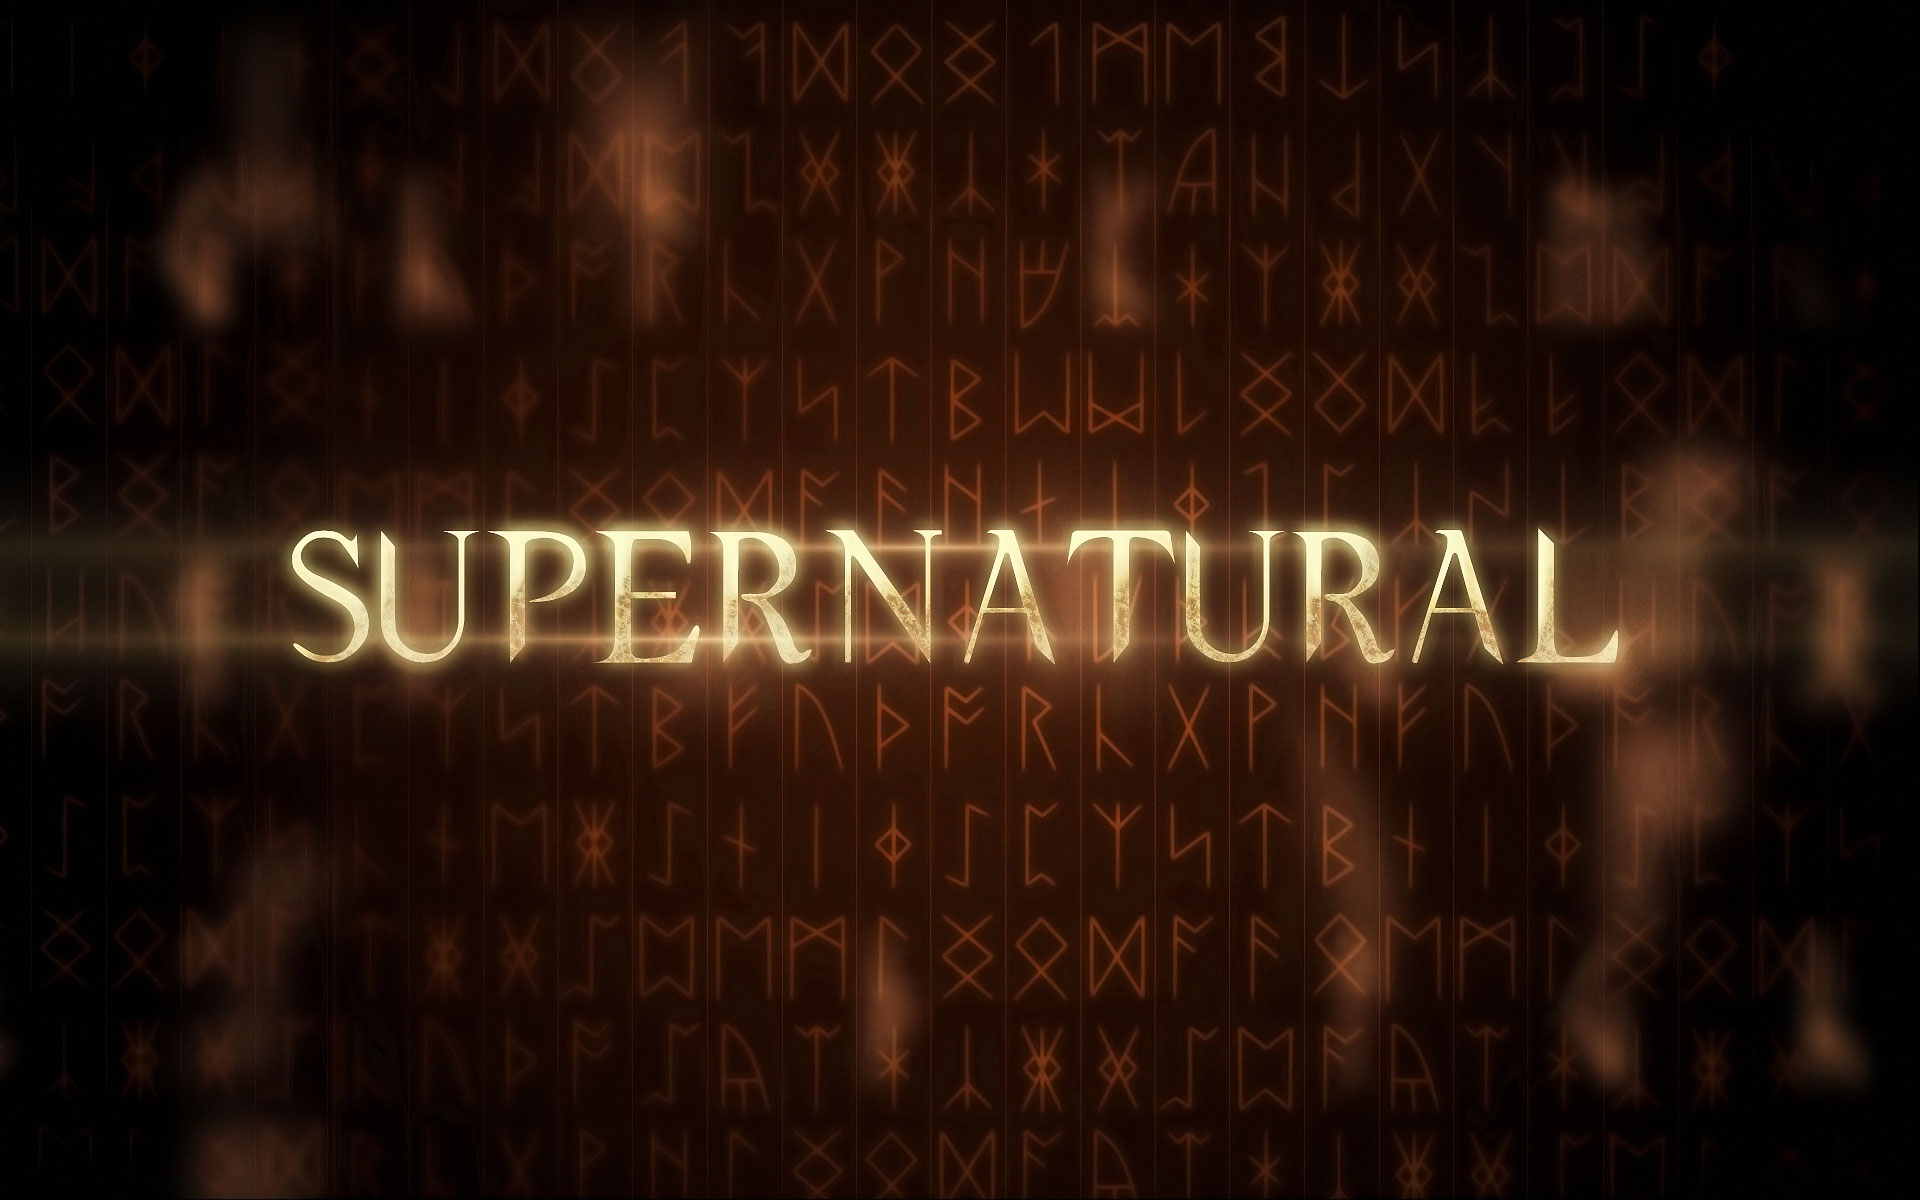 supernatural season 9 logo wallpaper 3 1920x1200